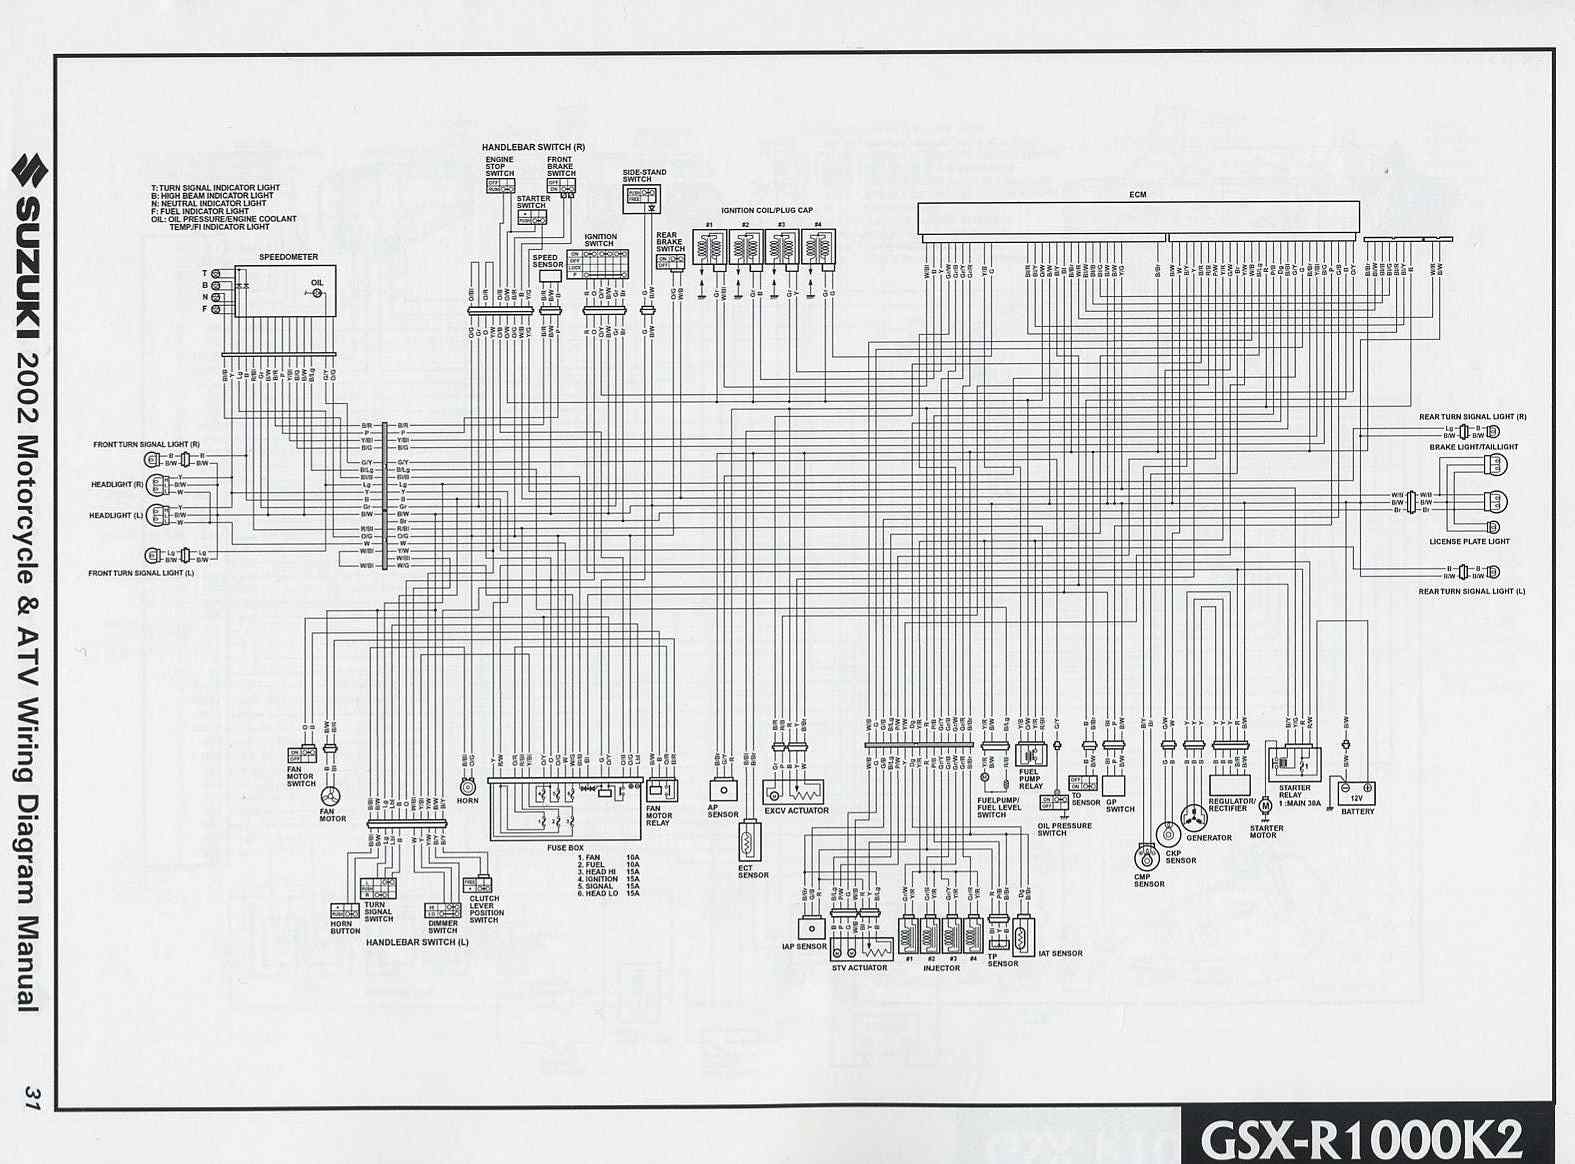 hight resolution of suzuki gsxr fuse box wiring diagram repair guides suzuki gsx r wiring diagram k 6